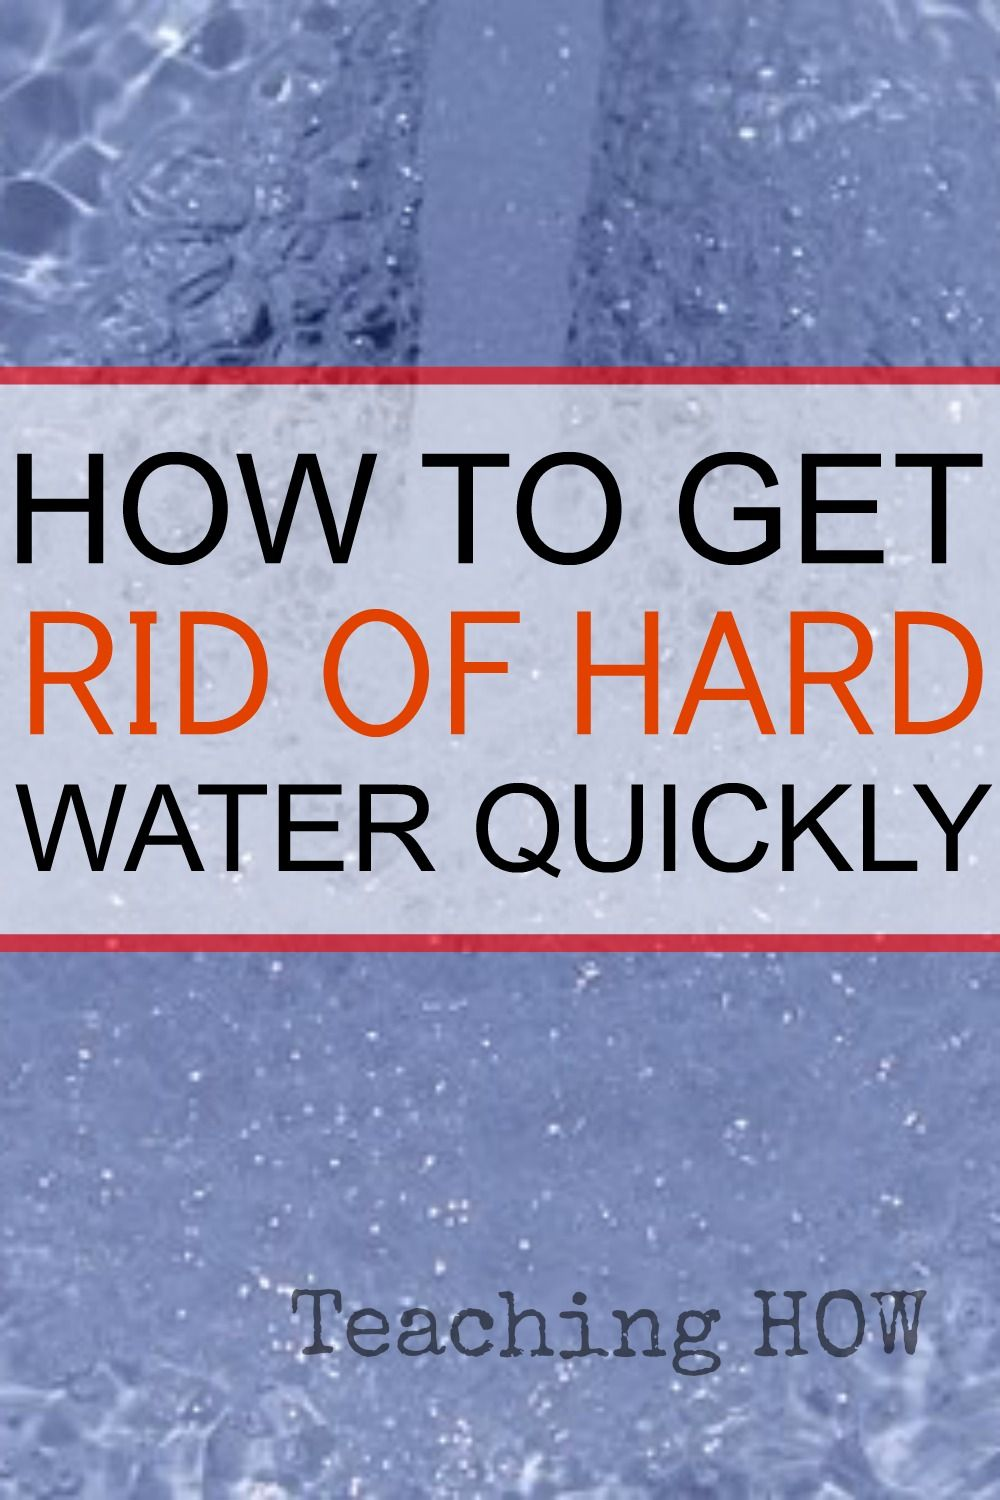 How to get hard quick